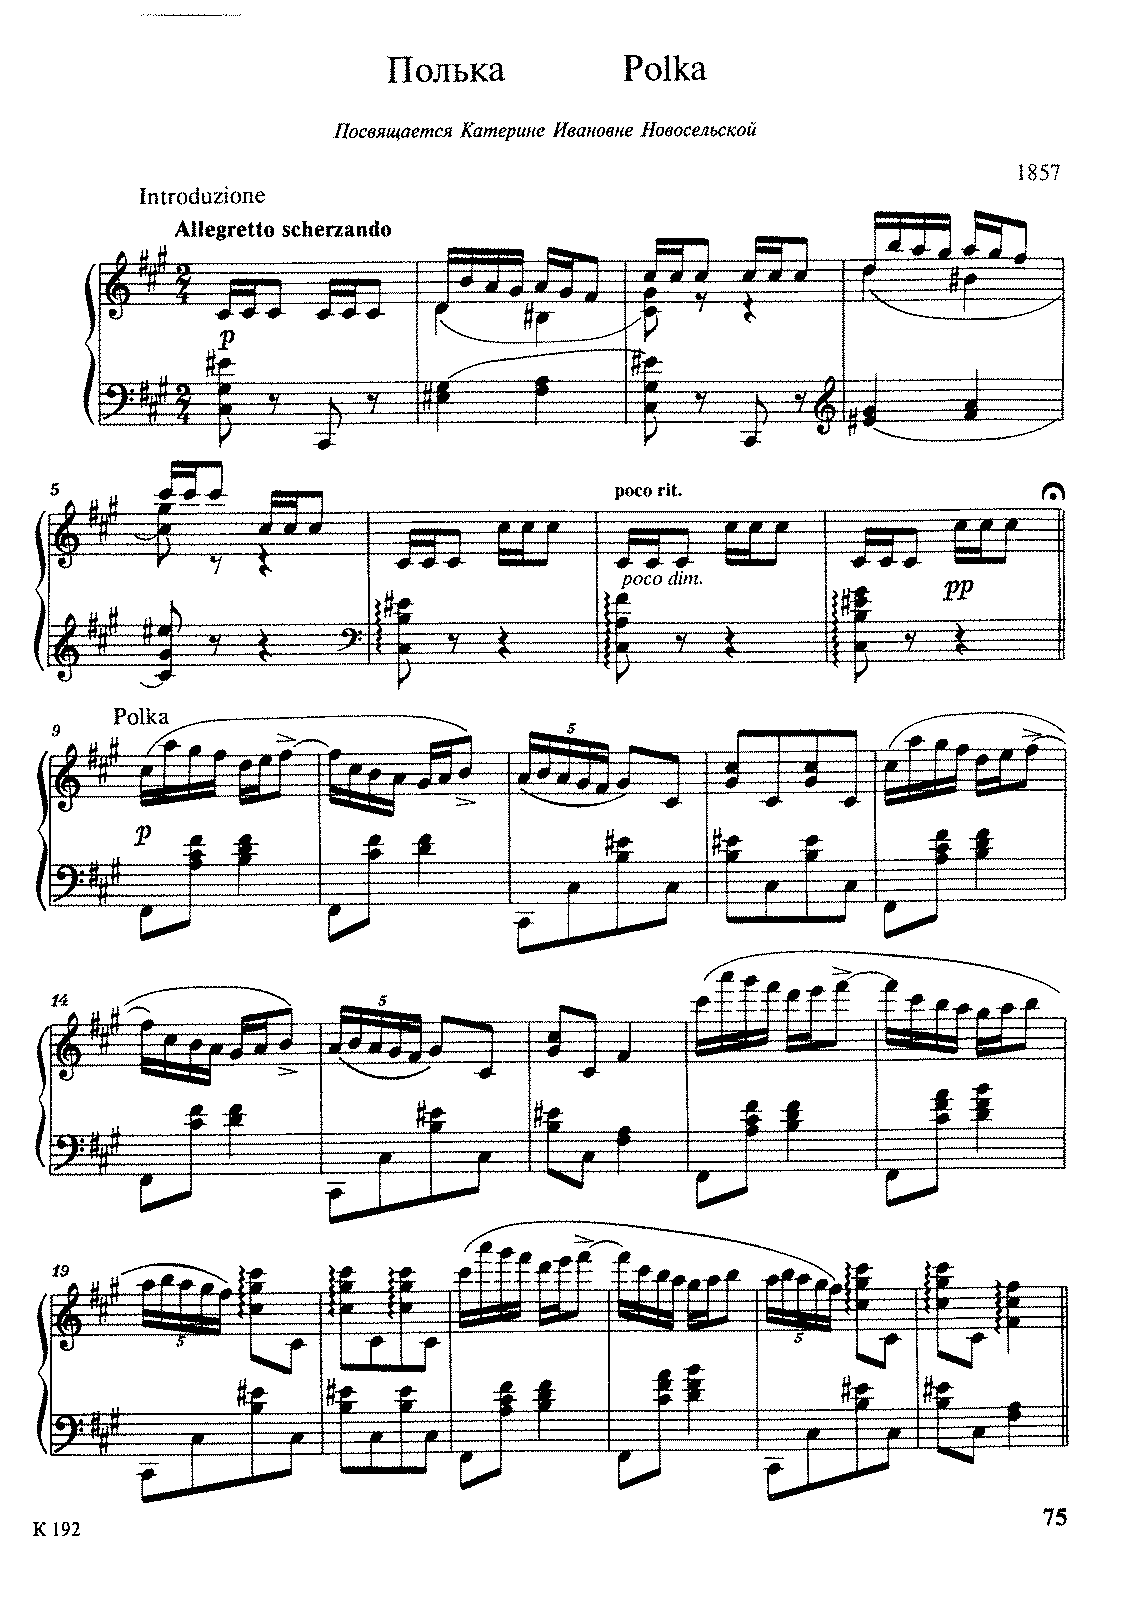 Balakirew Polka in fis.pdf